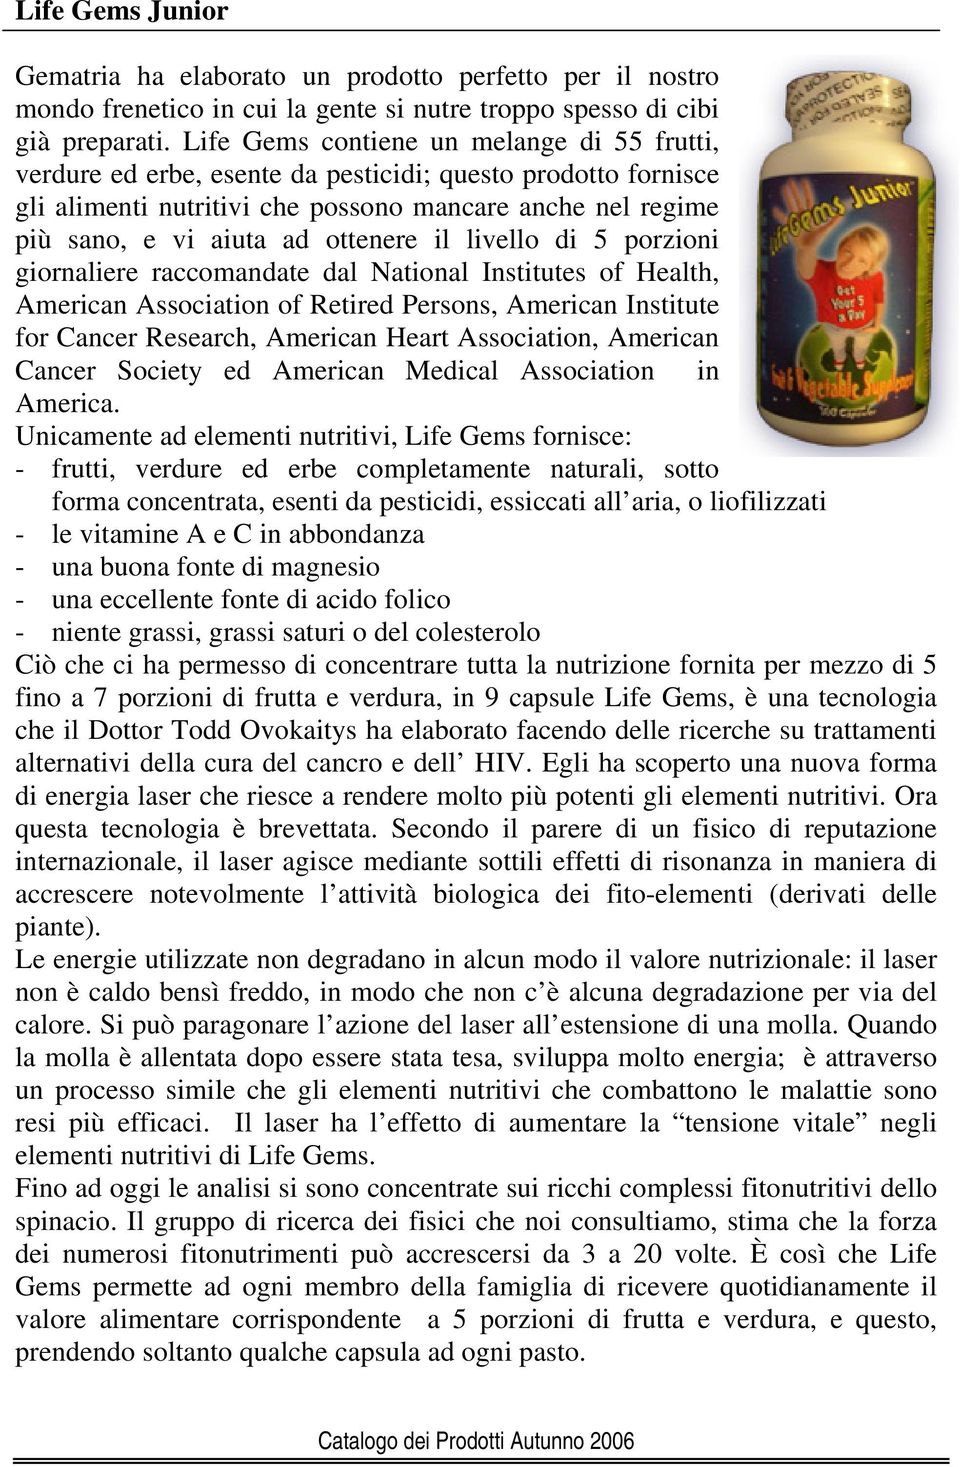 il livello di 5 porzioni giornaliere raccomandate dal National Institutes of Health, American Association of Retired Persons, American Institute for Cancer Research, American Heart Association,